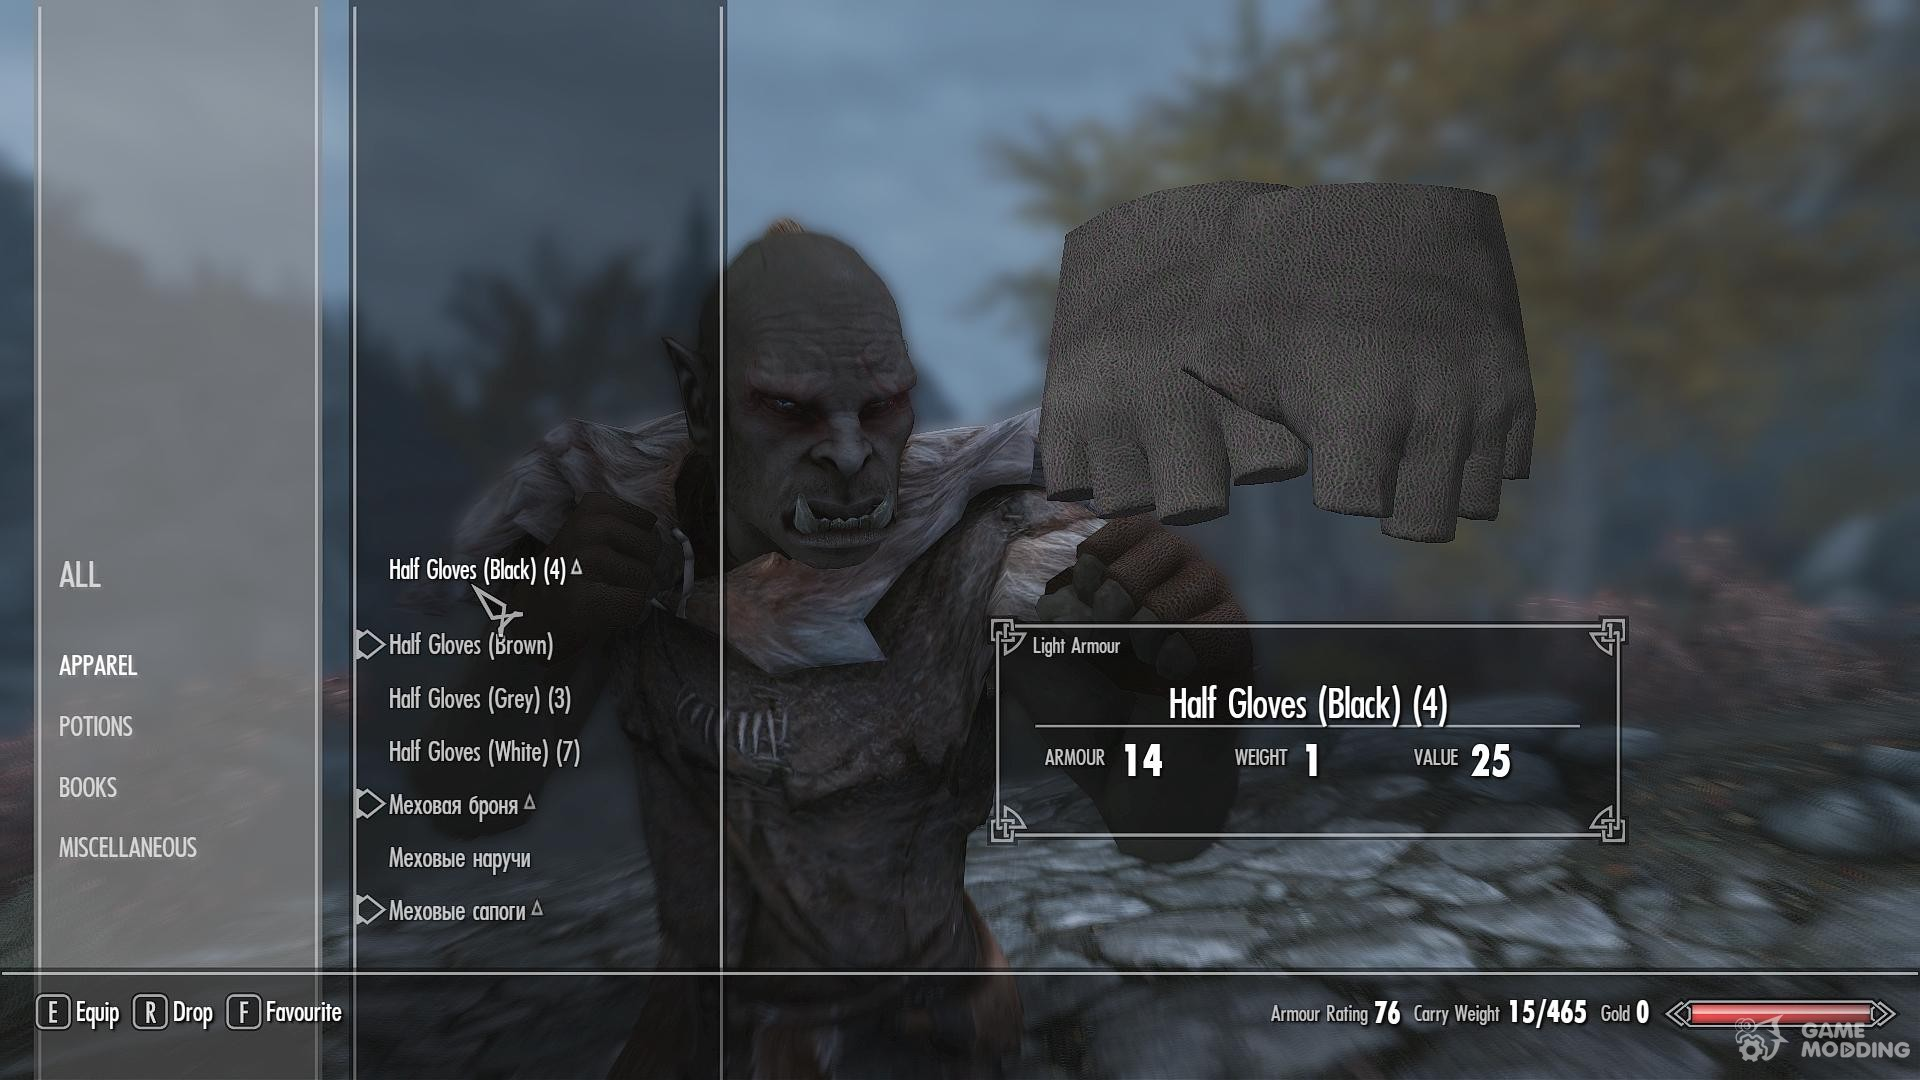 Black gloves skyrim - Half Gloves Of Skyrim For Tes V Skyrim Rear Left View